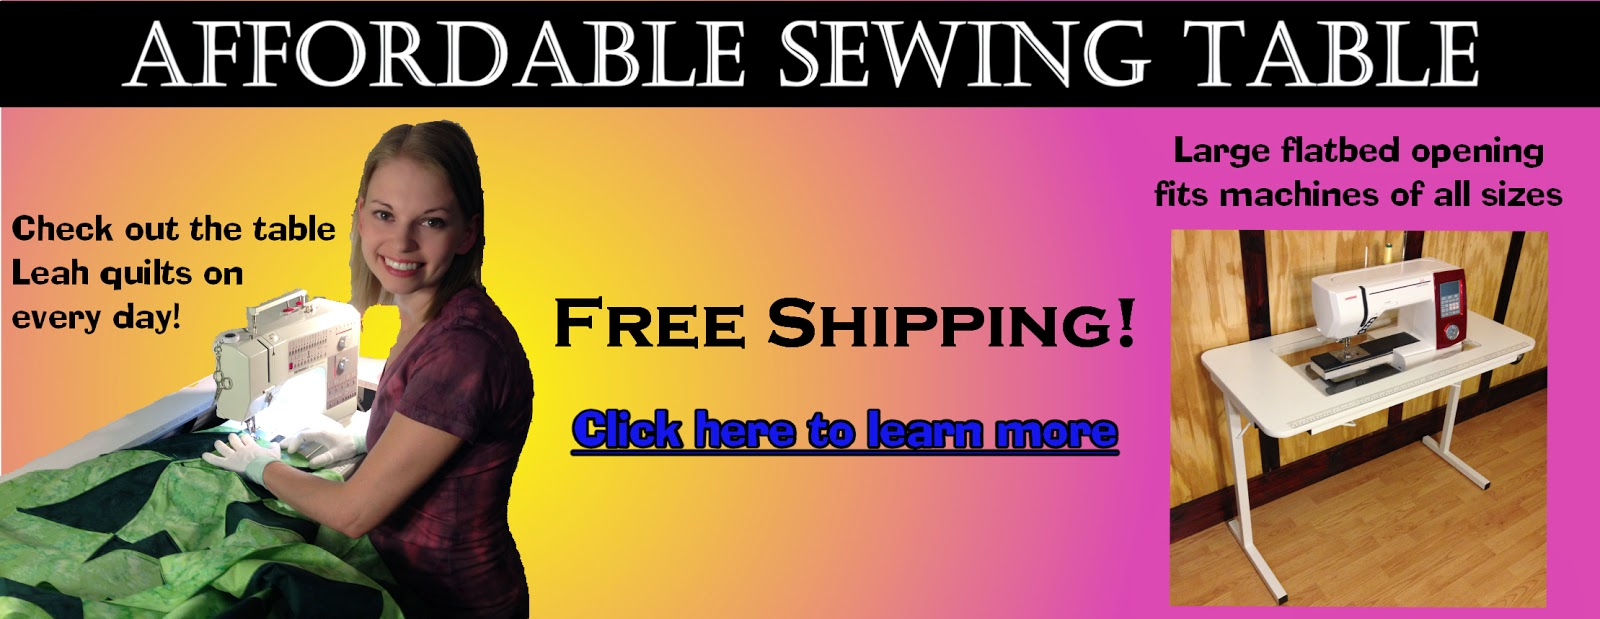 http://www.leahday.com/shop/product/affordable-sewing-table/